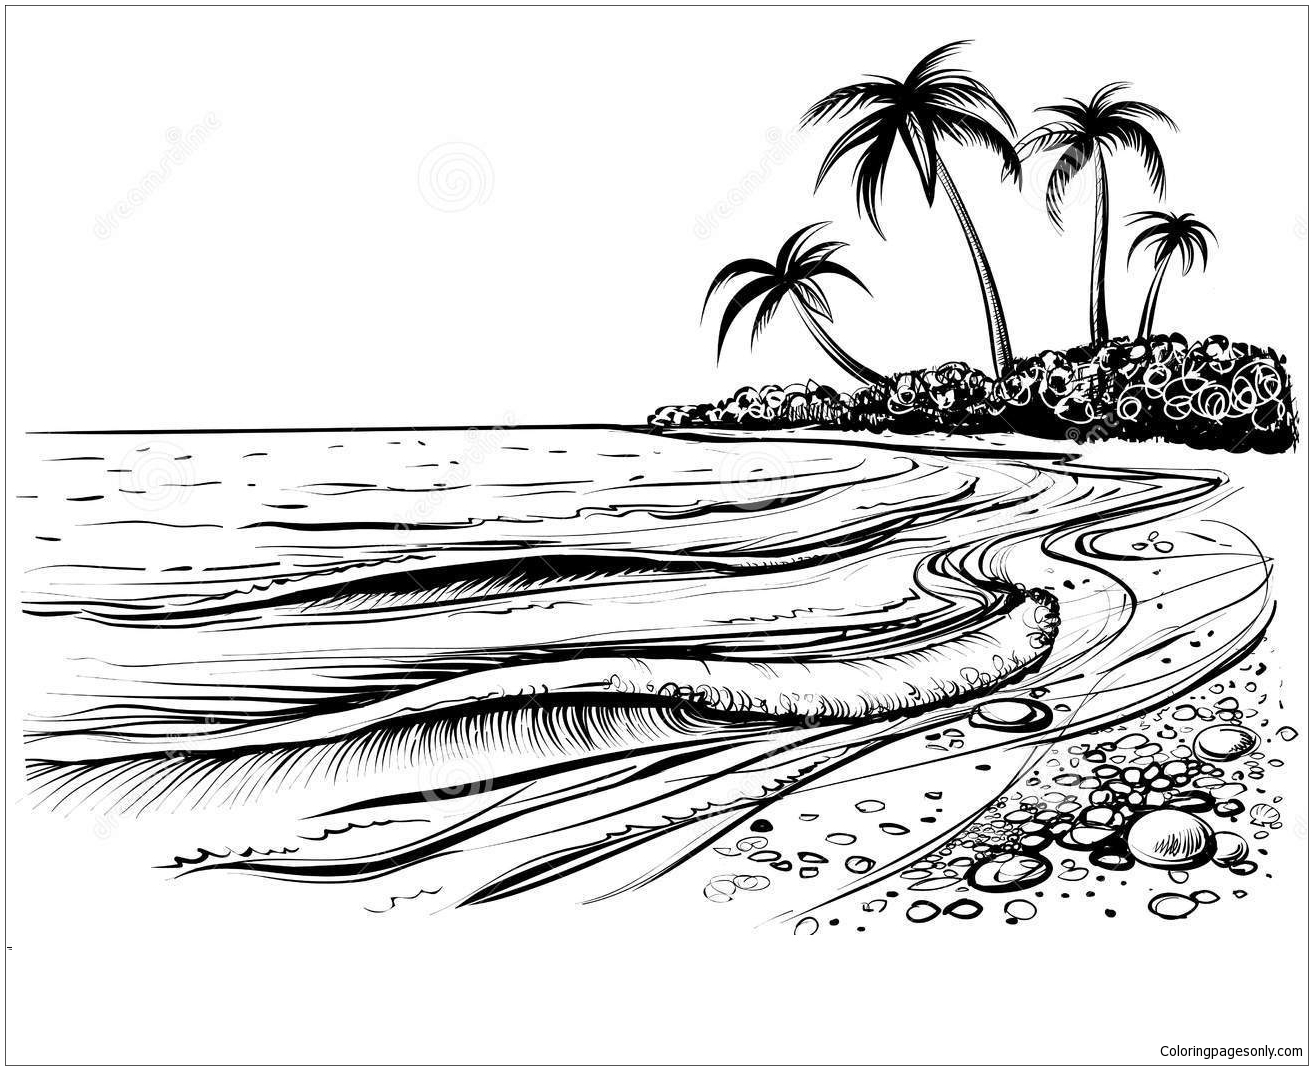 beach picture for coloring sea beach with waves coloring pages nature seasons coloring for picture beach